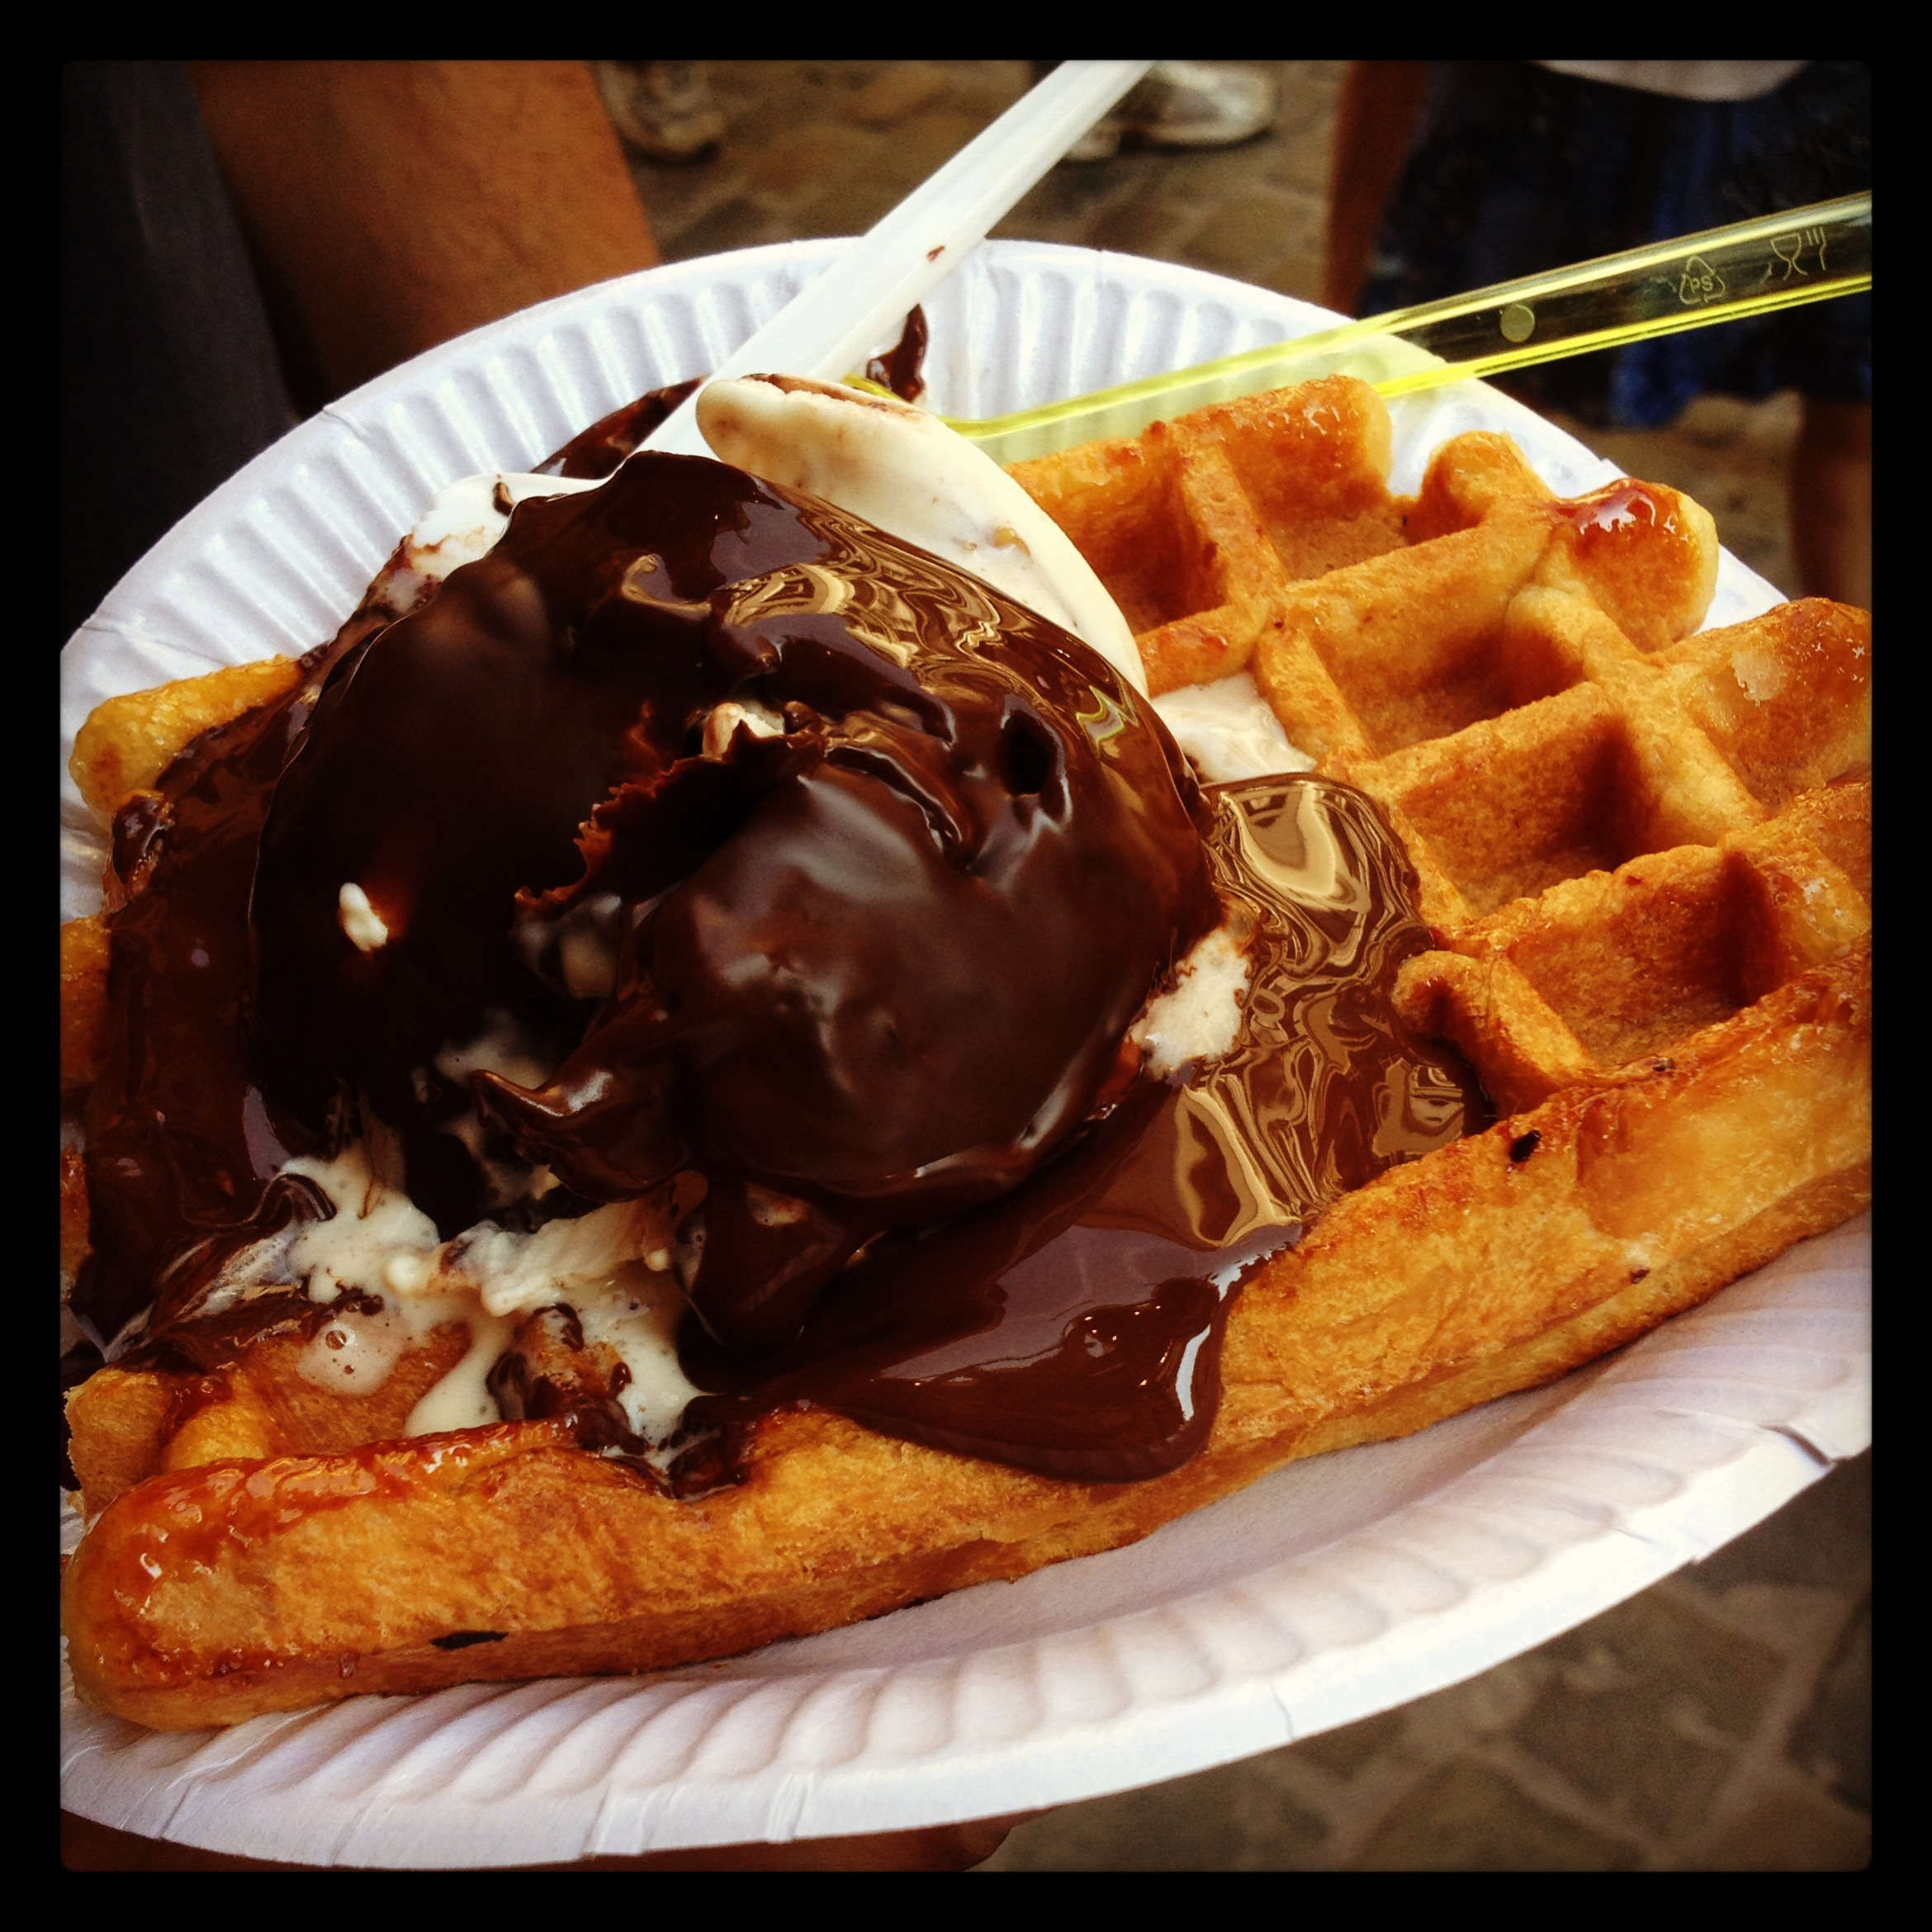 Belgian Waffle topped with ice cream and chocolate sauce